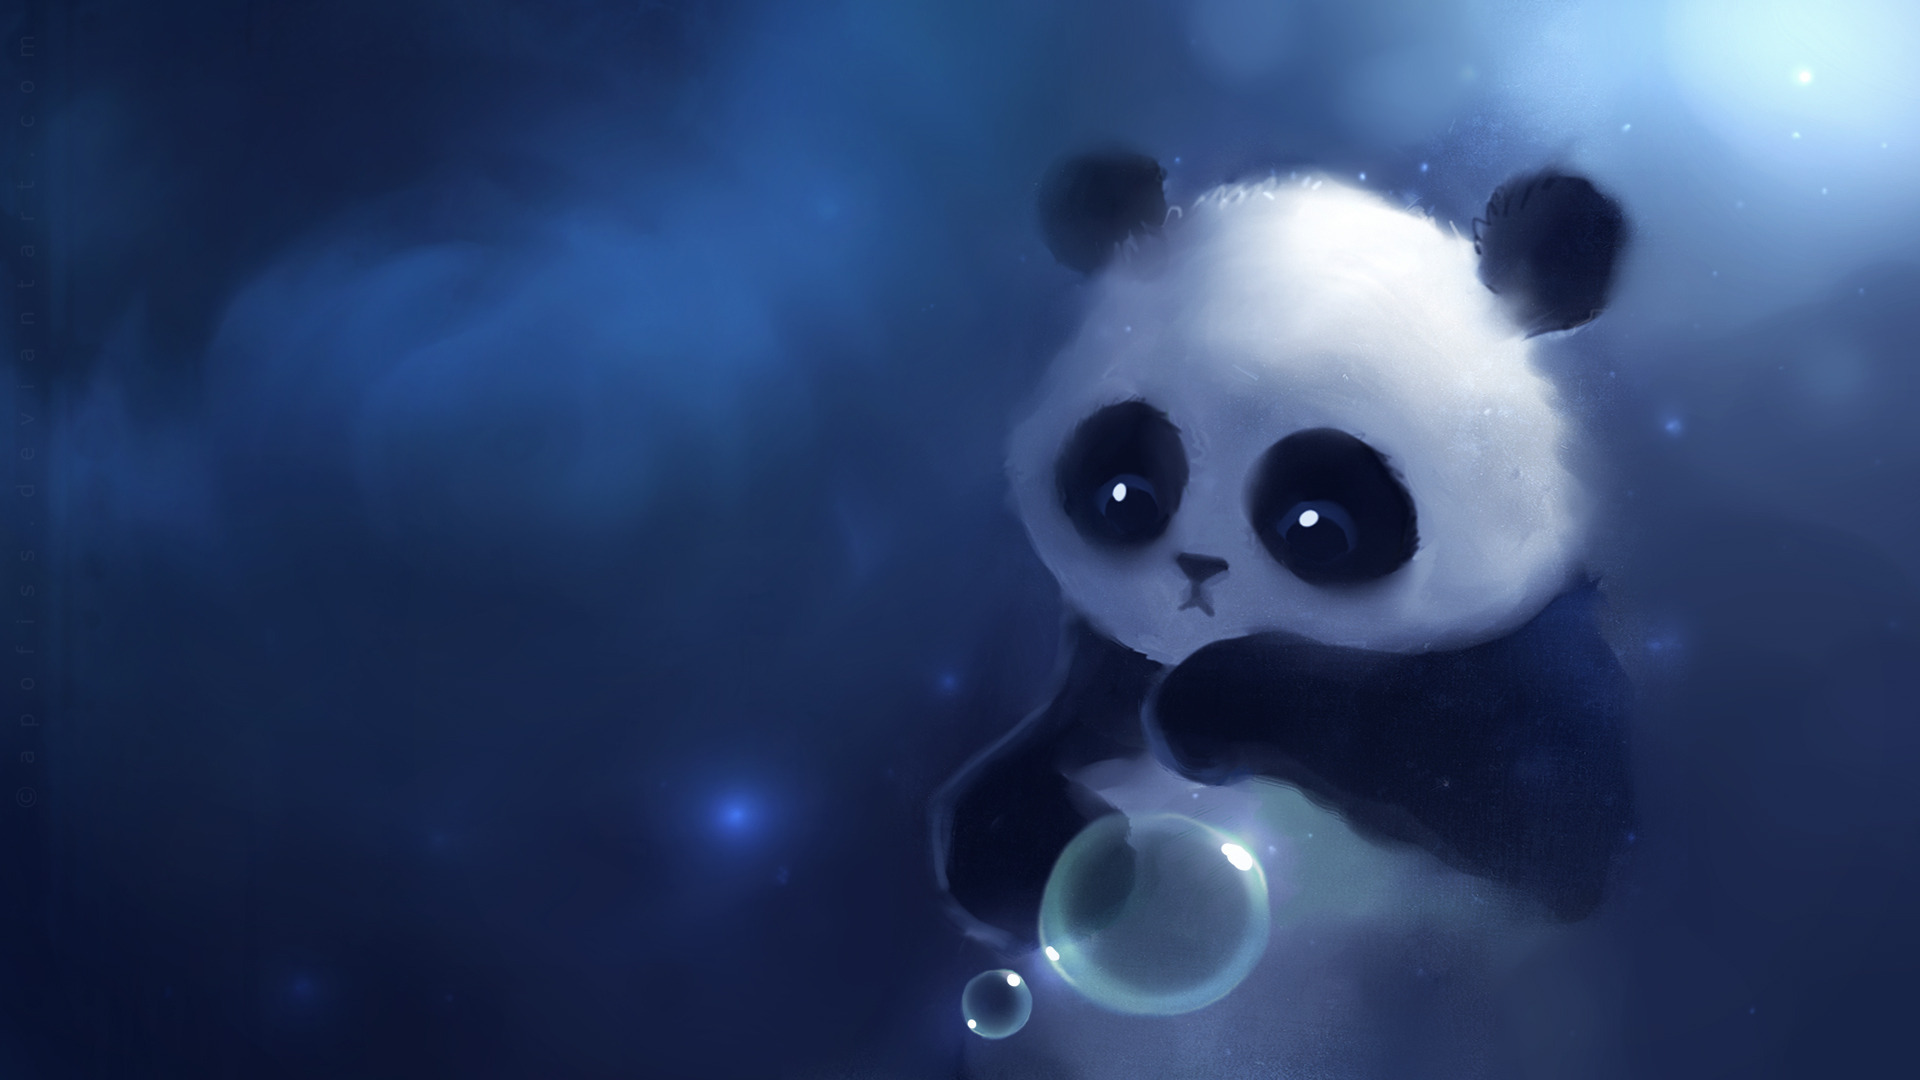 Cute Panda Painting   Cute Wallpapers 1920x1080